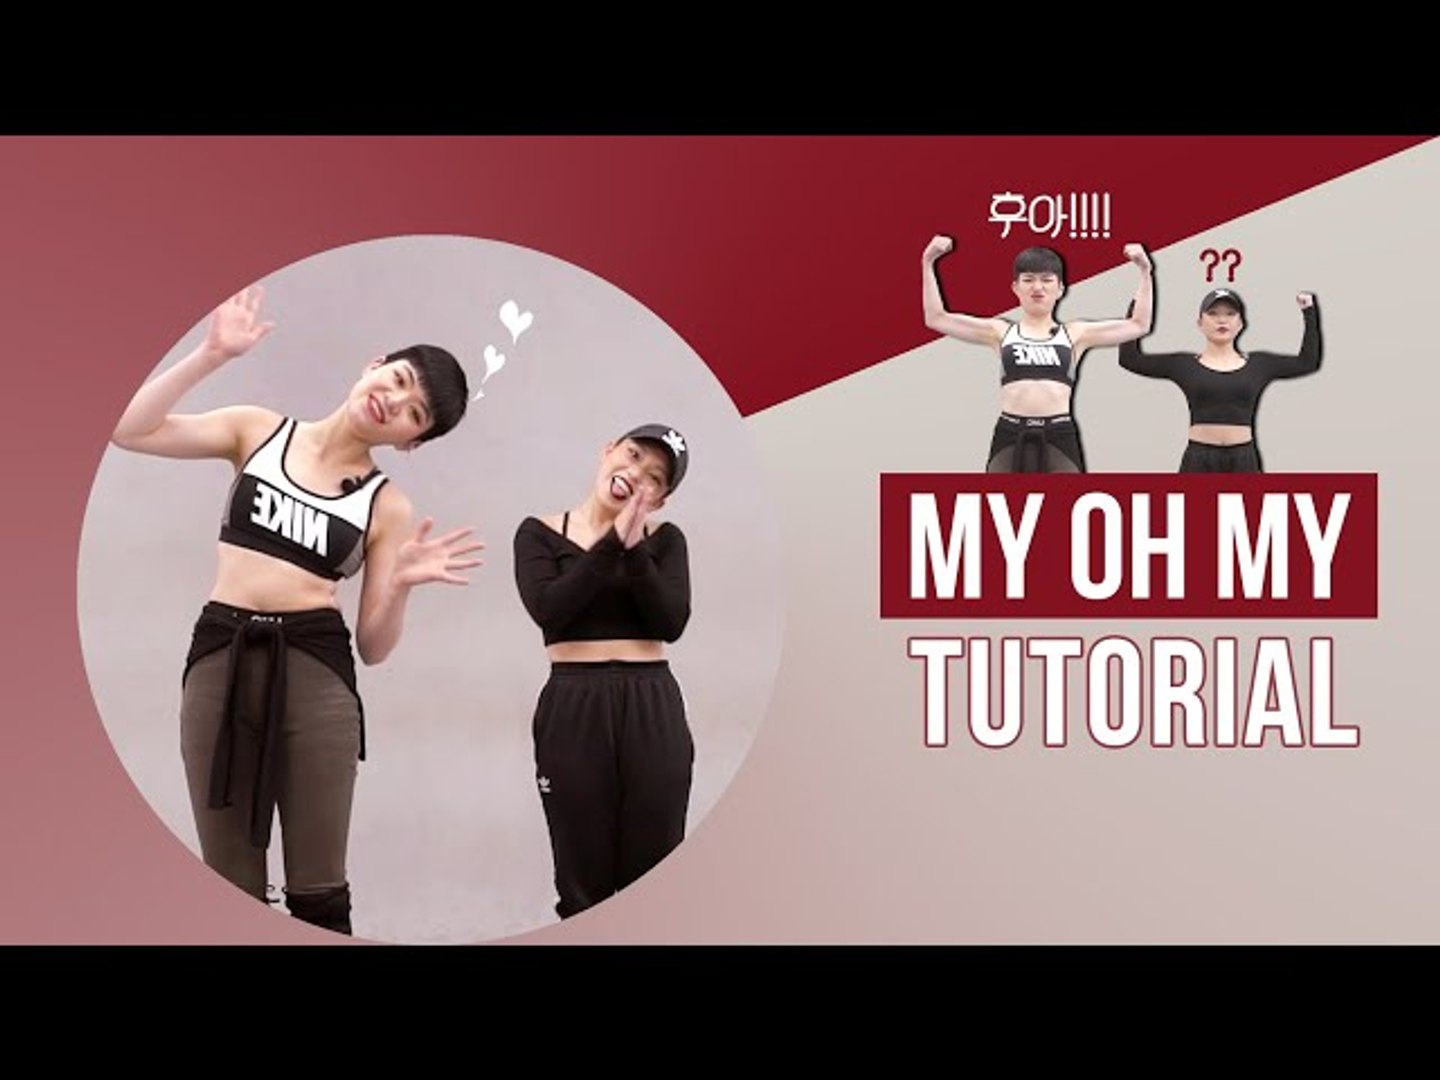 [ Mirrored ] DANCE TUTORIAL : Camila Cabello - My Oh My ft. DaBaby